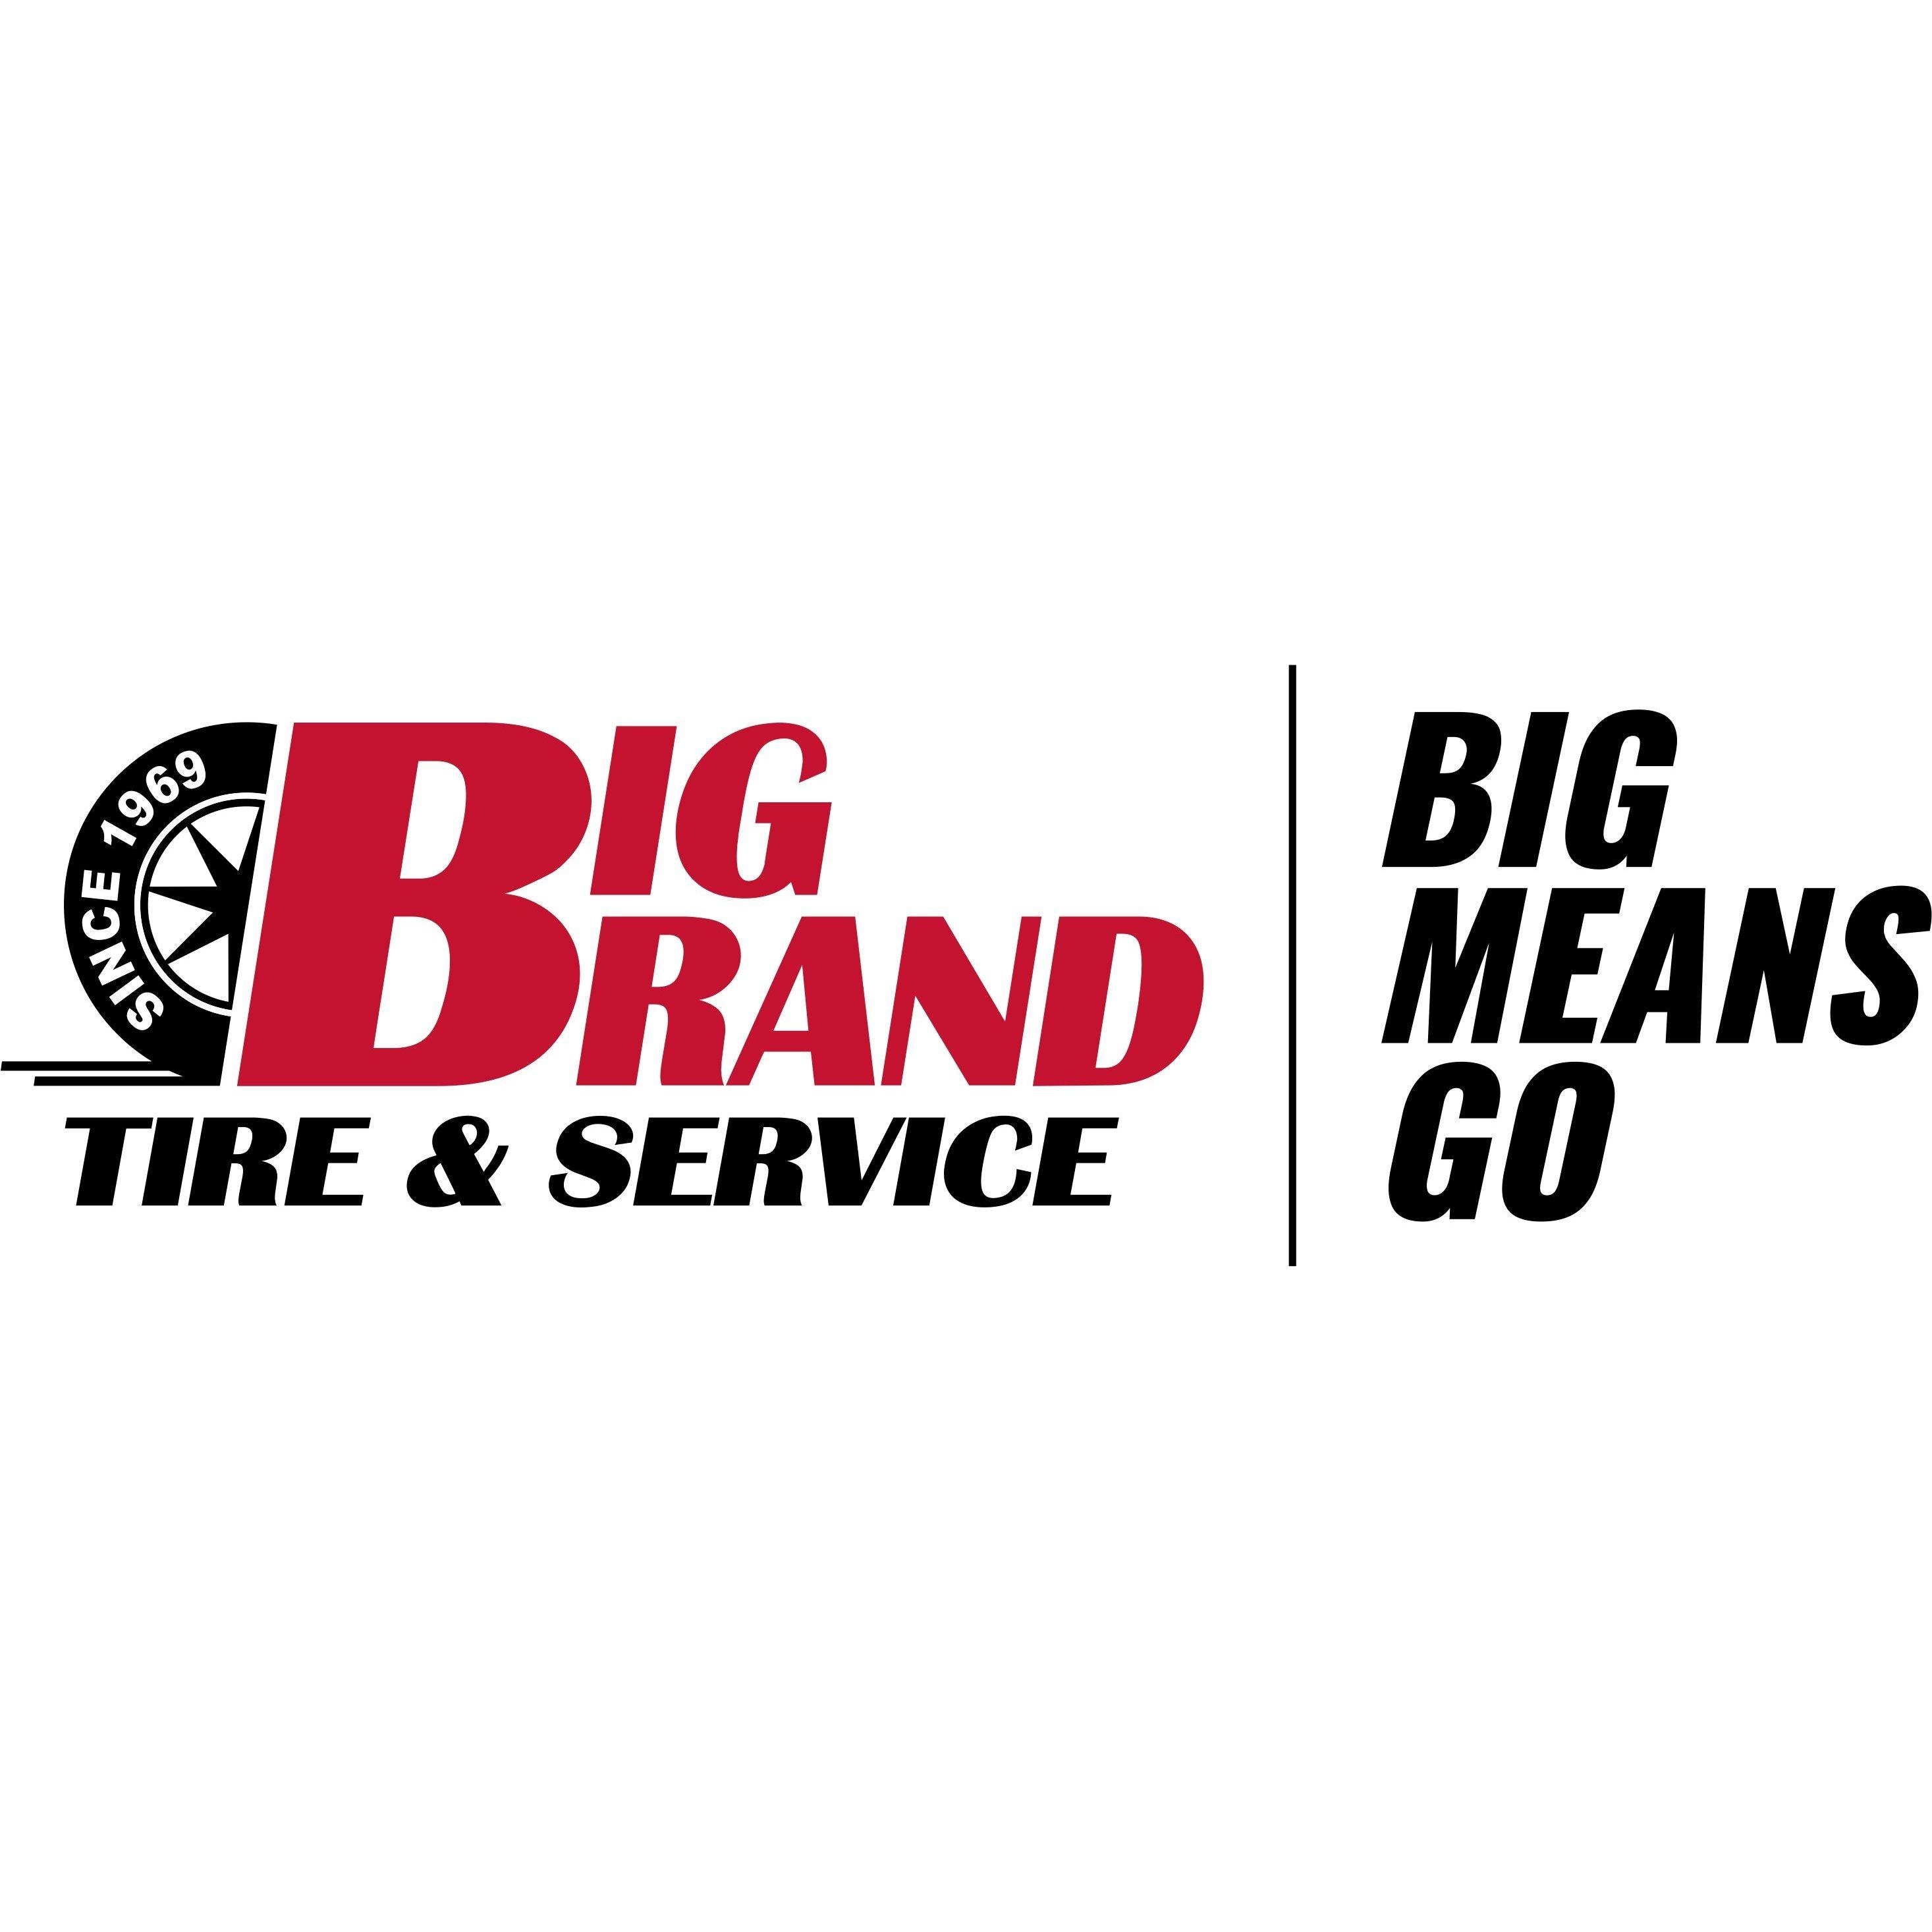 Big Brand Tire & Service - Camarillo, CA - Tires & Wheel Alignment